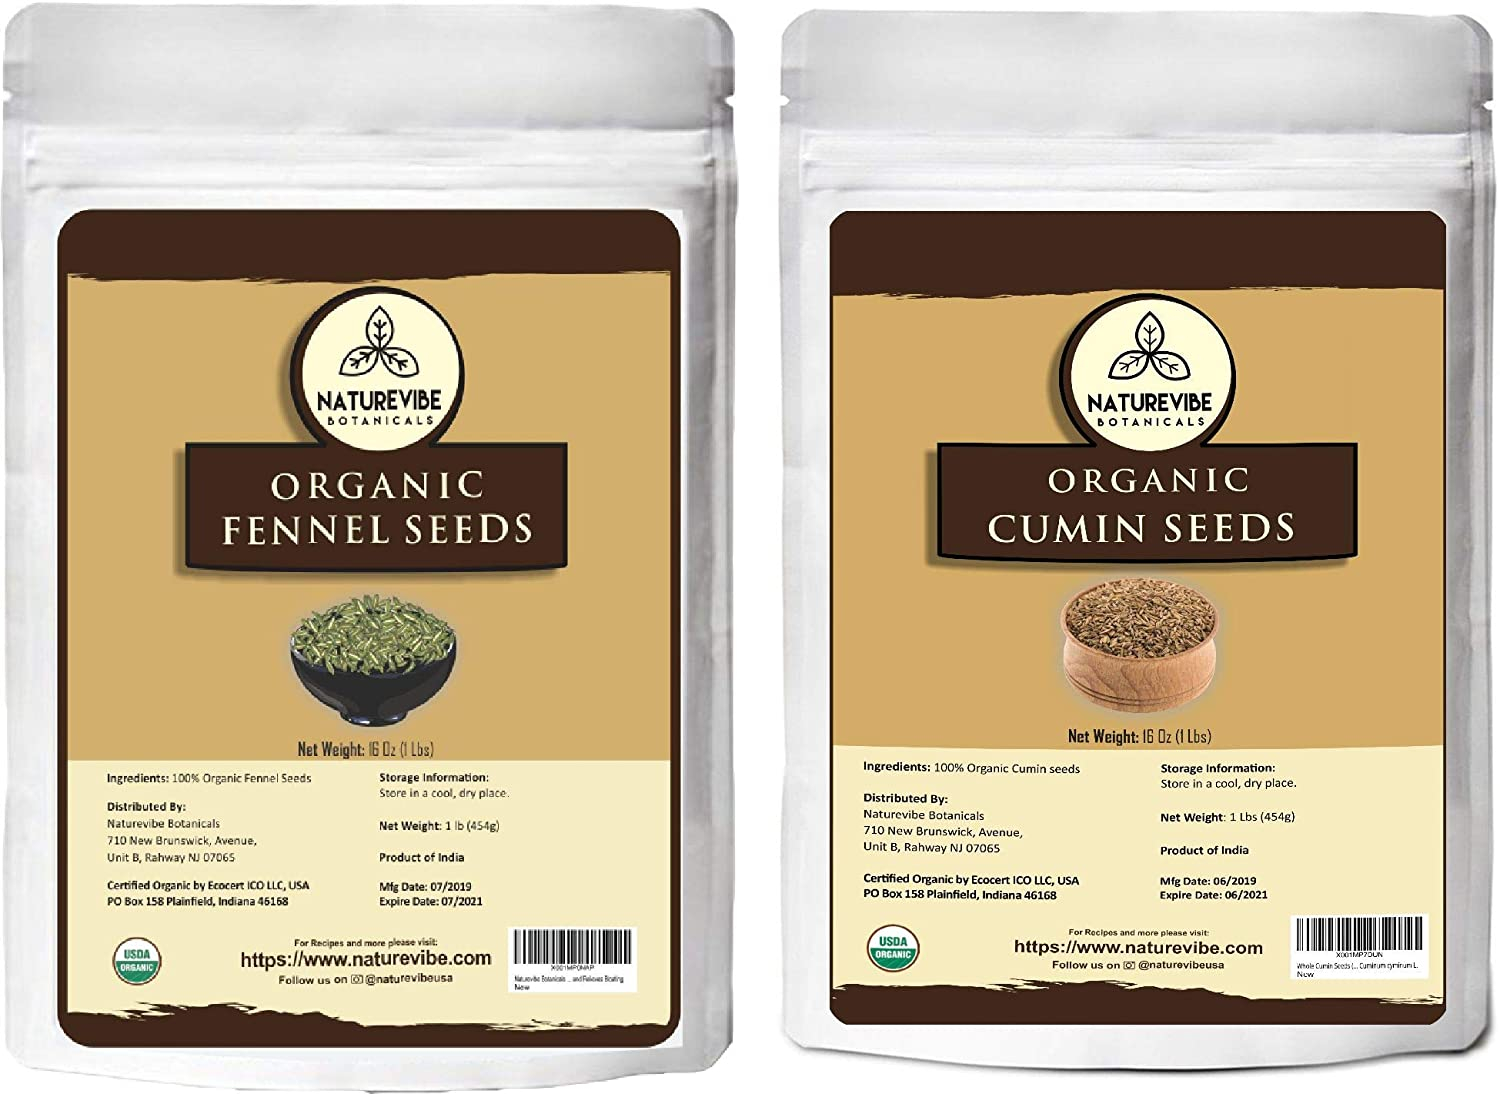 Naturevibe Botanicals Organic Fennel Seed (1lb) and Whole cumin seeds(1lb) combo | Indian Spice| Gluten free & non-Gmo